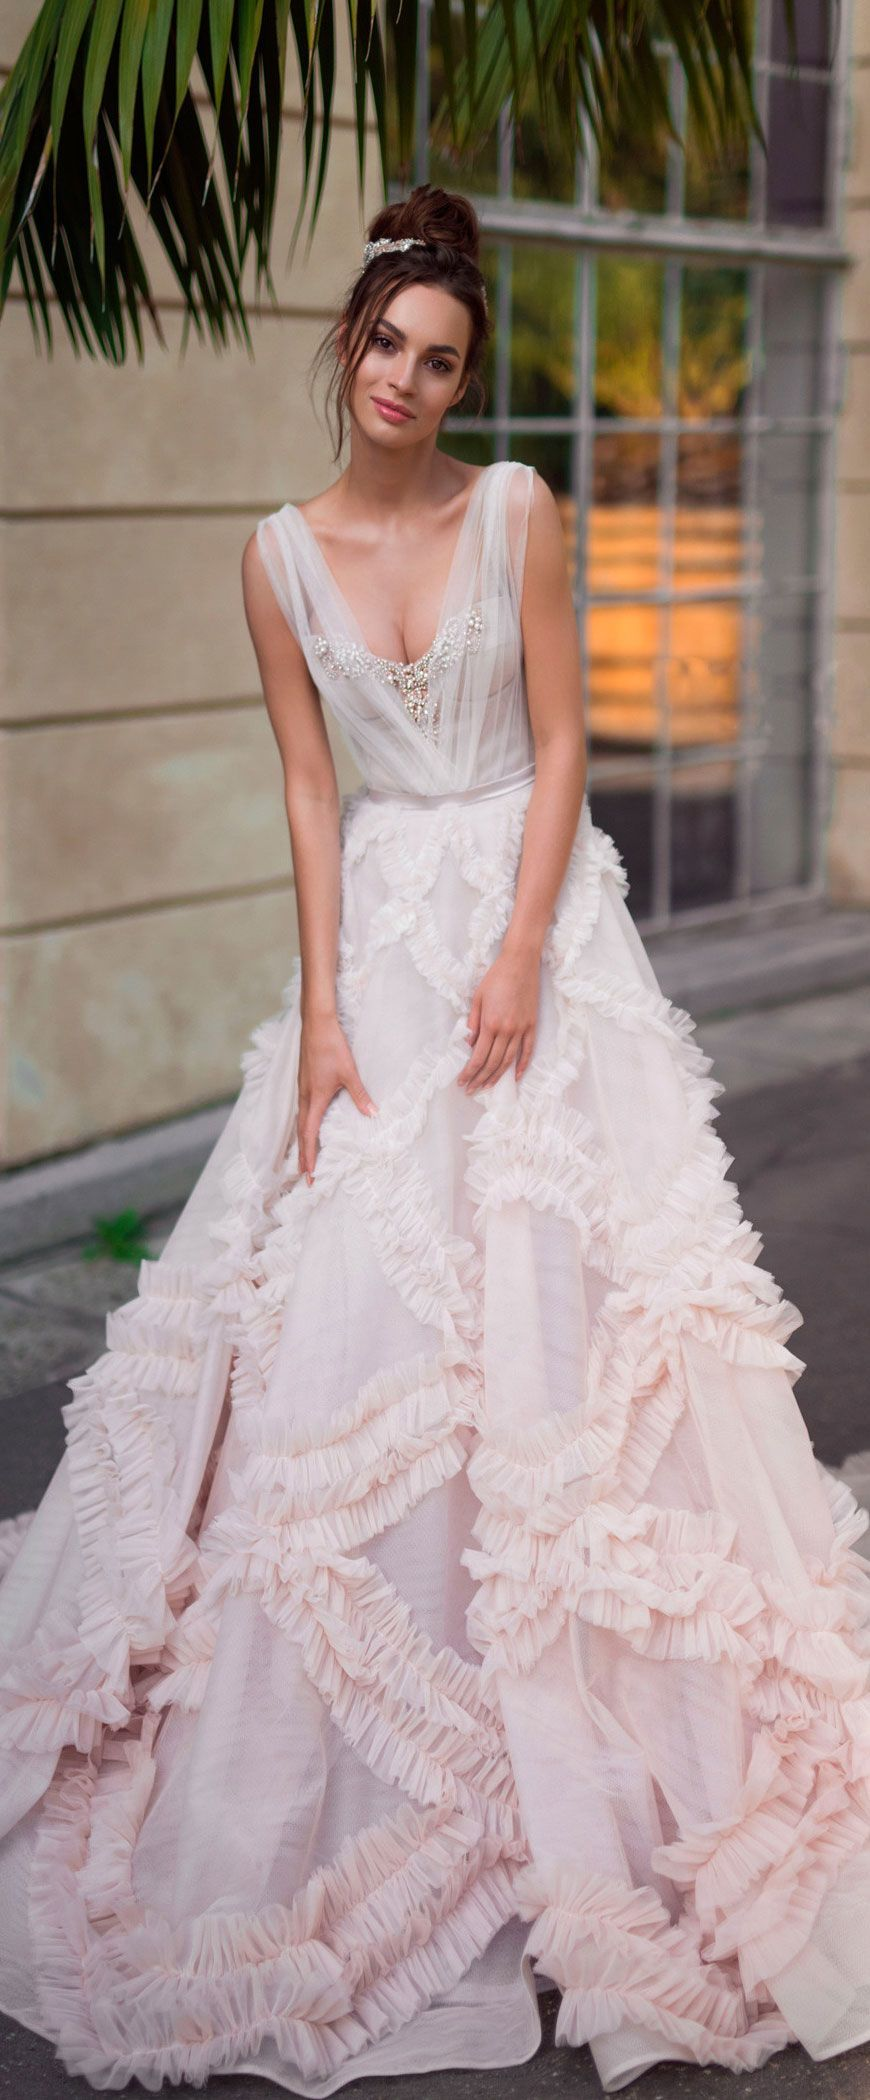 Blammobiamo wedding dresses chapel train illusions and neckline